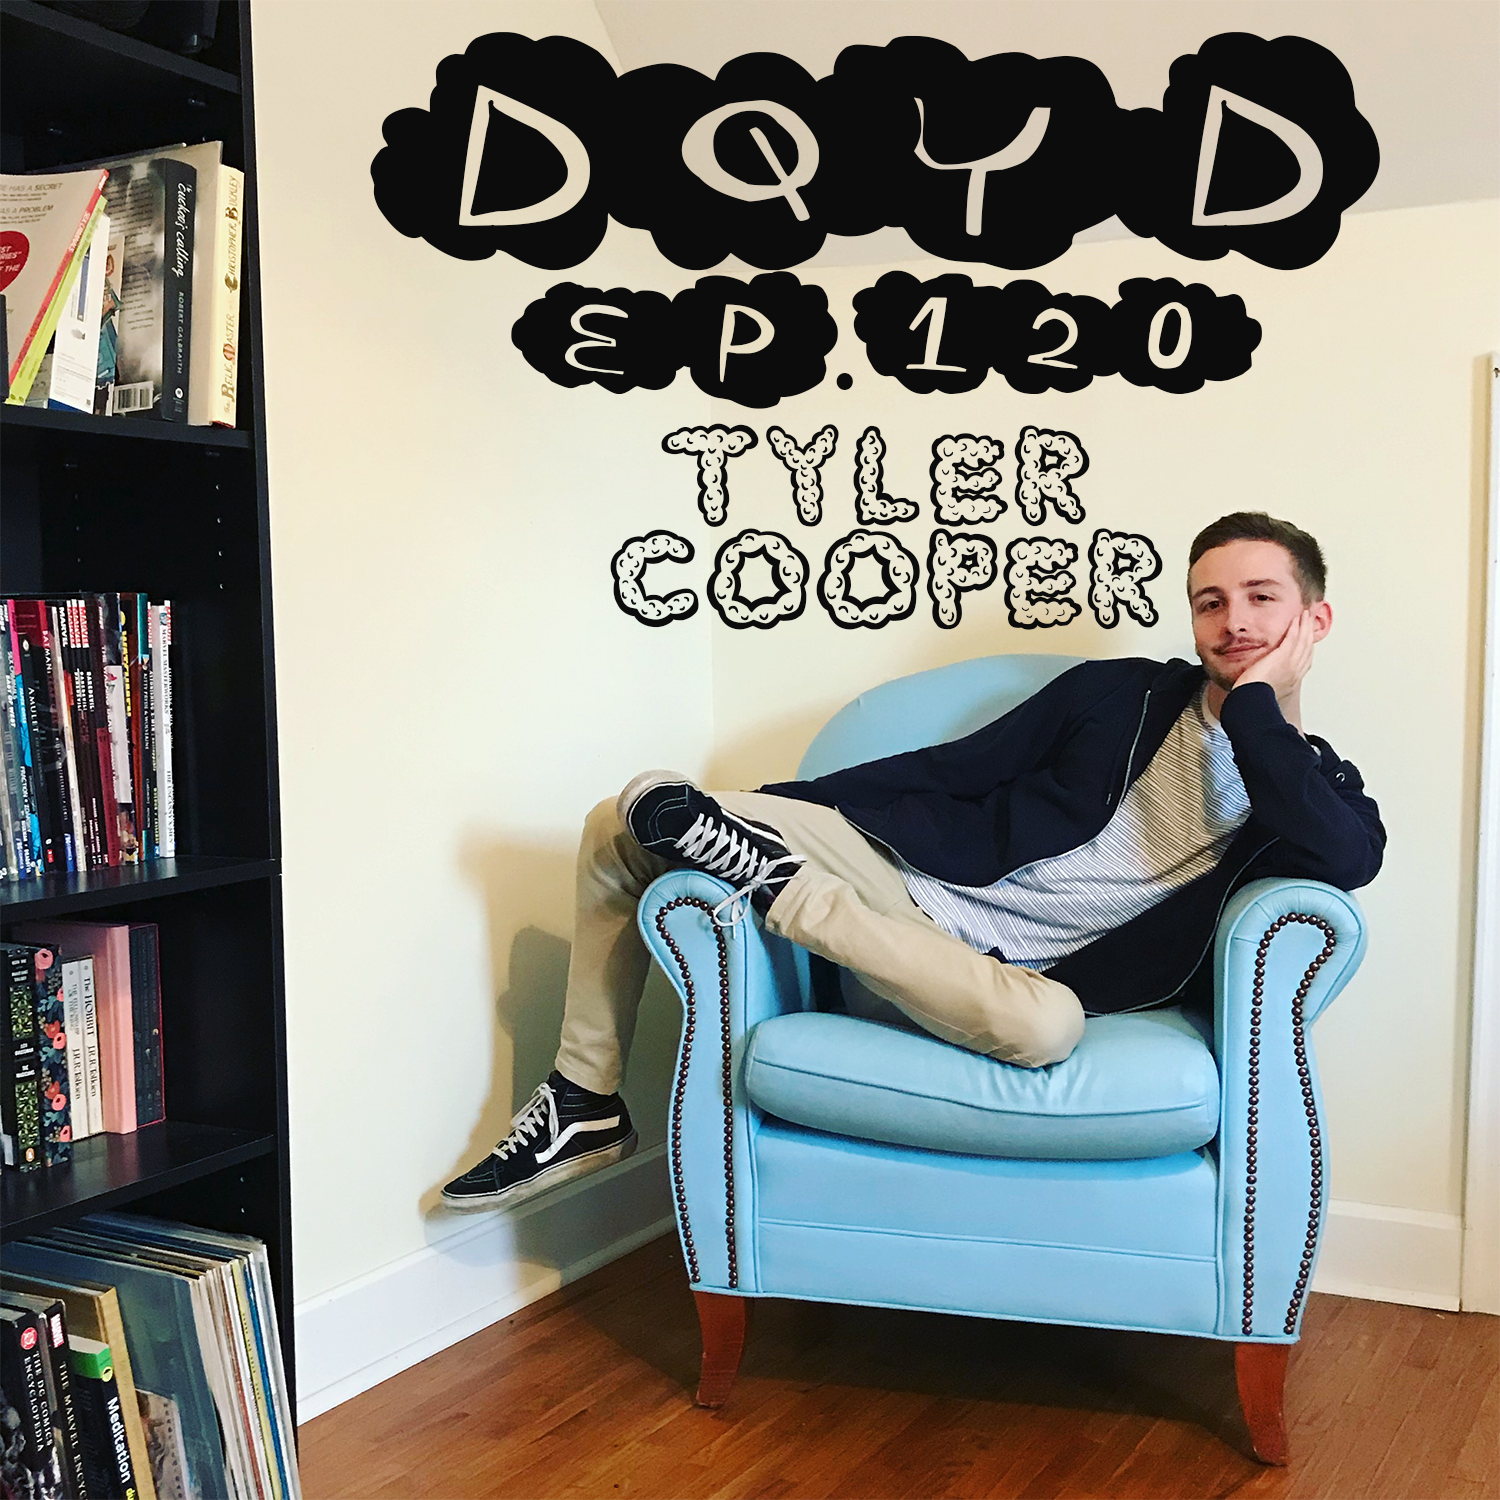 Episode 120 with Radio Personality: Tyler Cooper! Entertaining thousands of people each morning on their way to work, Cooper's combination of high energy wit and self-deprecating humor make him perfect for the world of entertainment. We discuss what makes him gravitate towards the world of hip hop, being introverted in an extroverted business and how to find ways to continually grow and surpass your goals. Check it out!